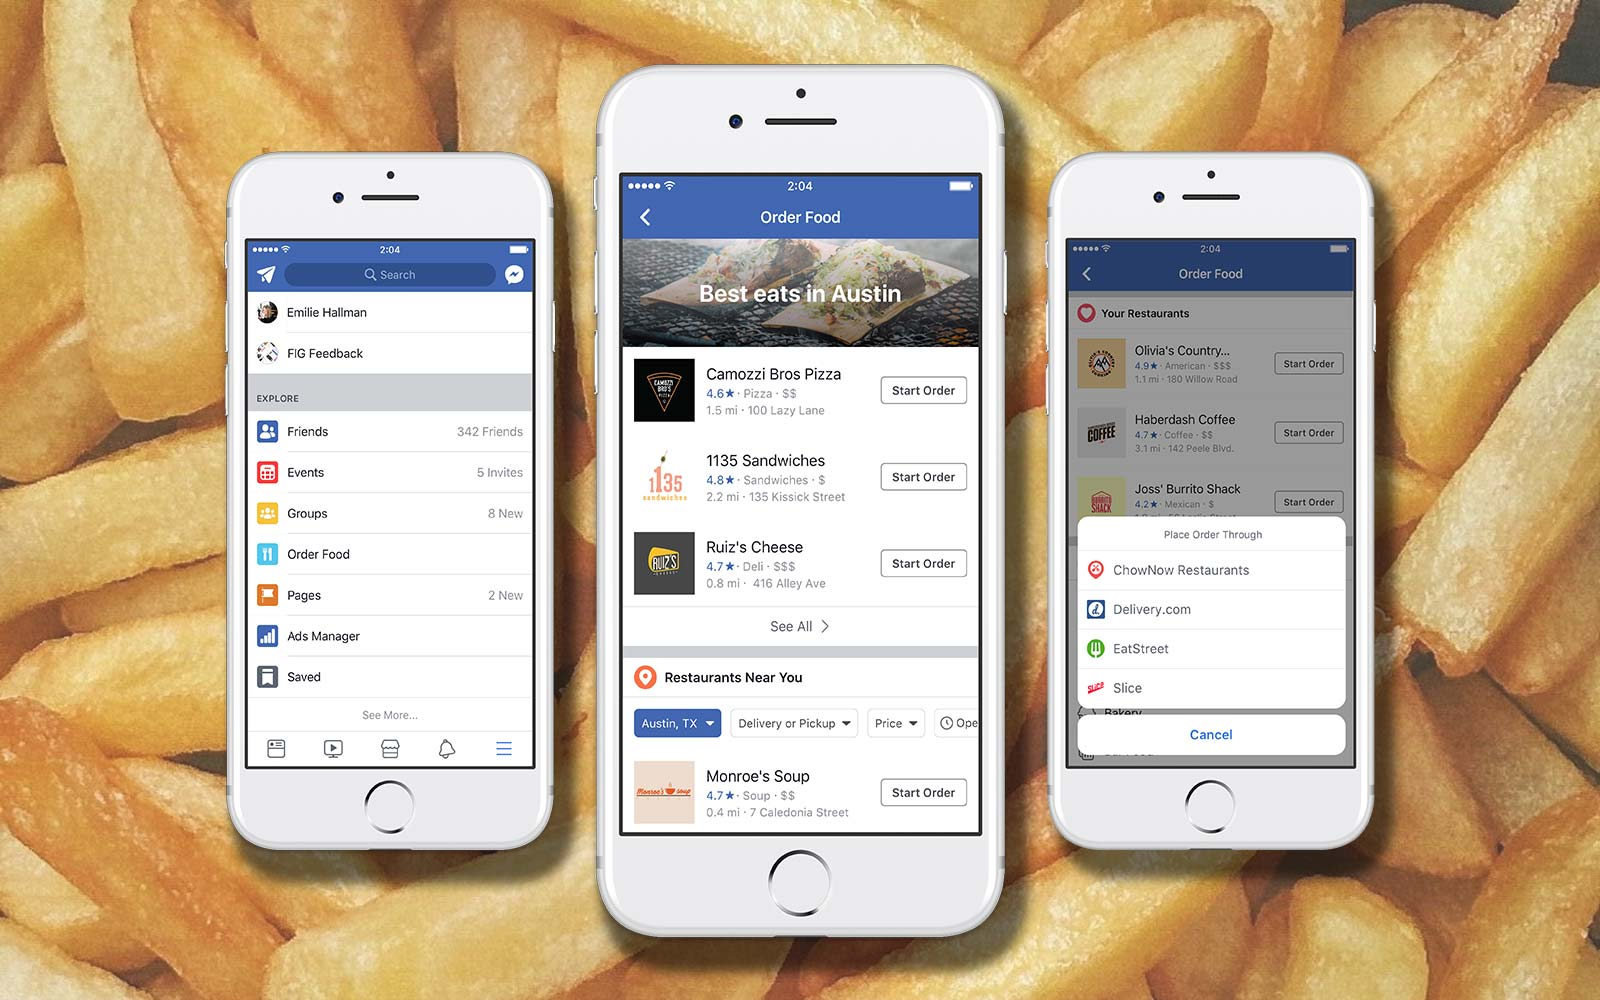 Facebook rolls out food ordering through its website